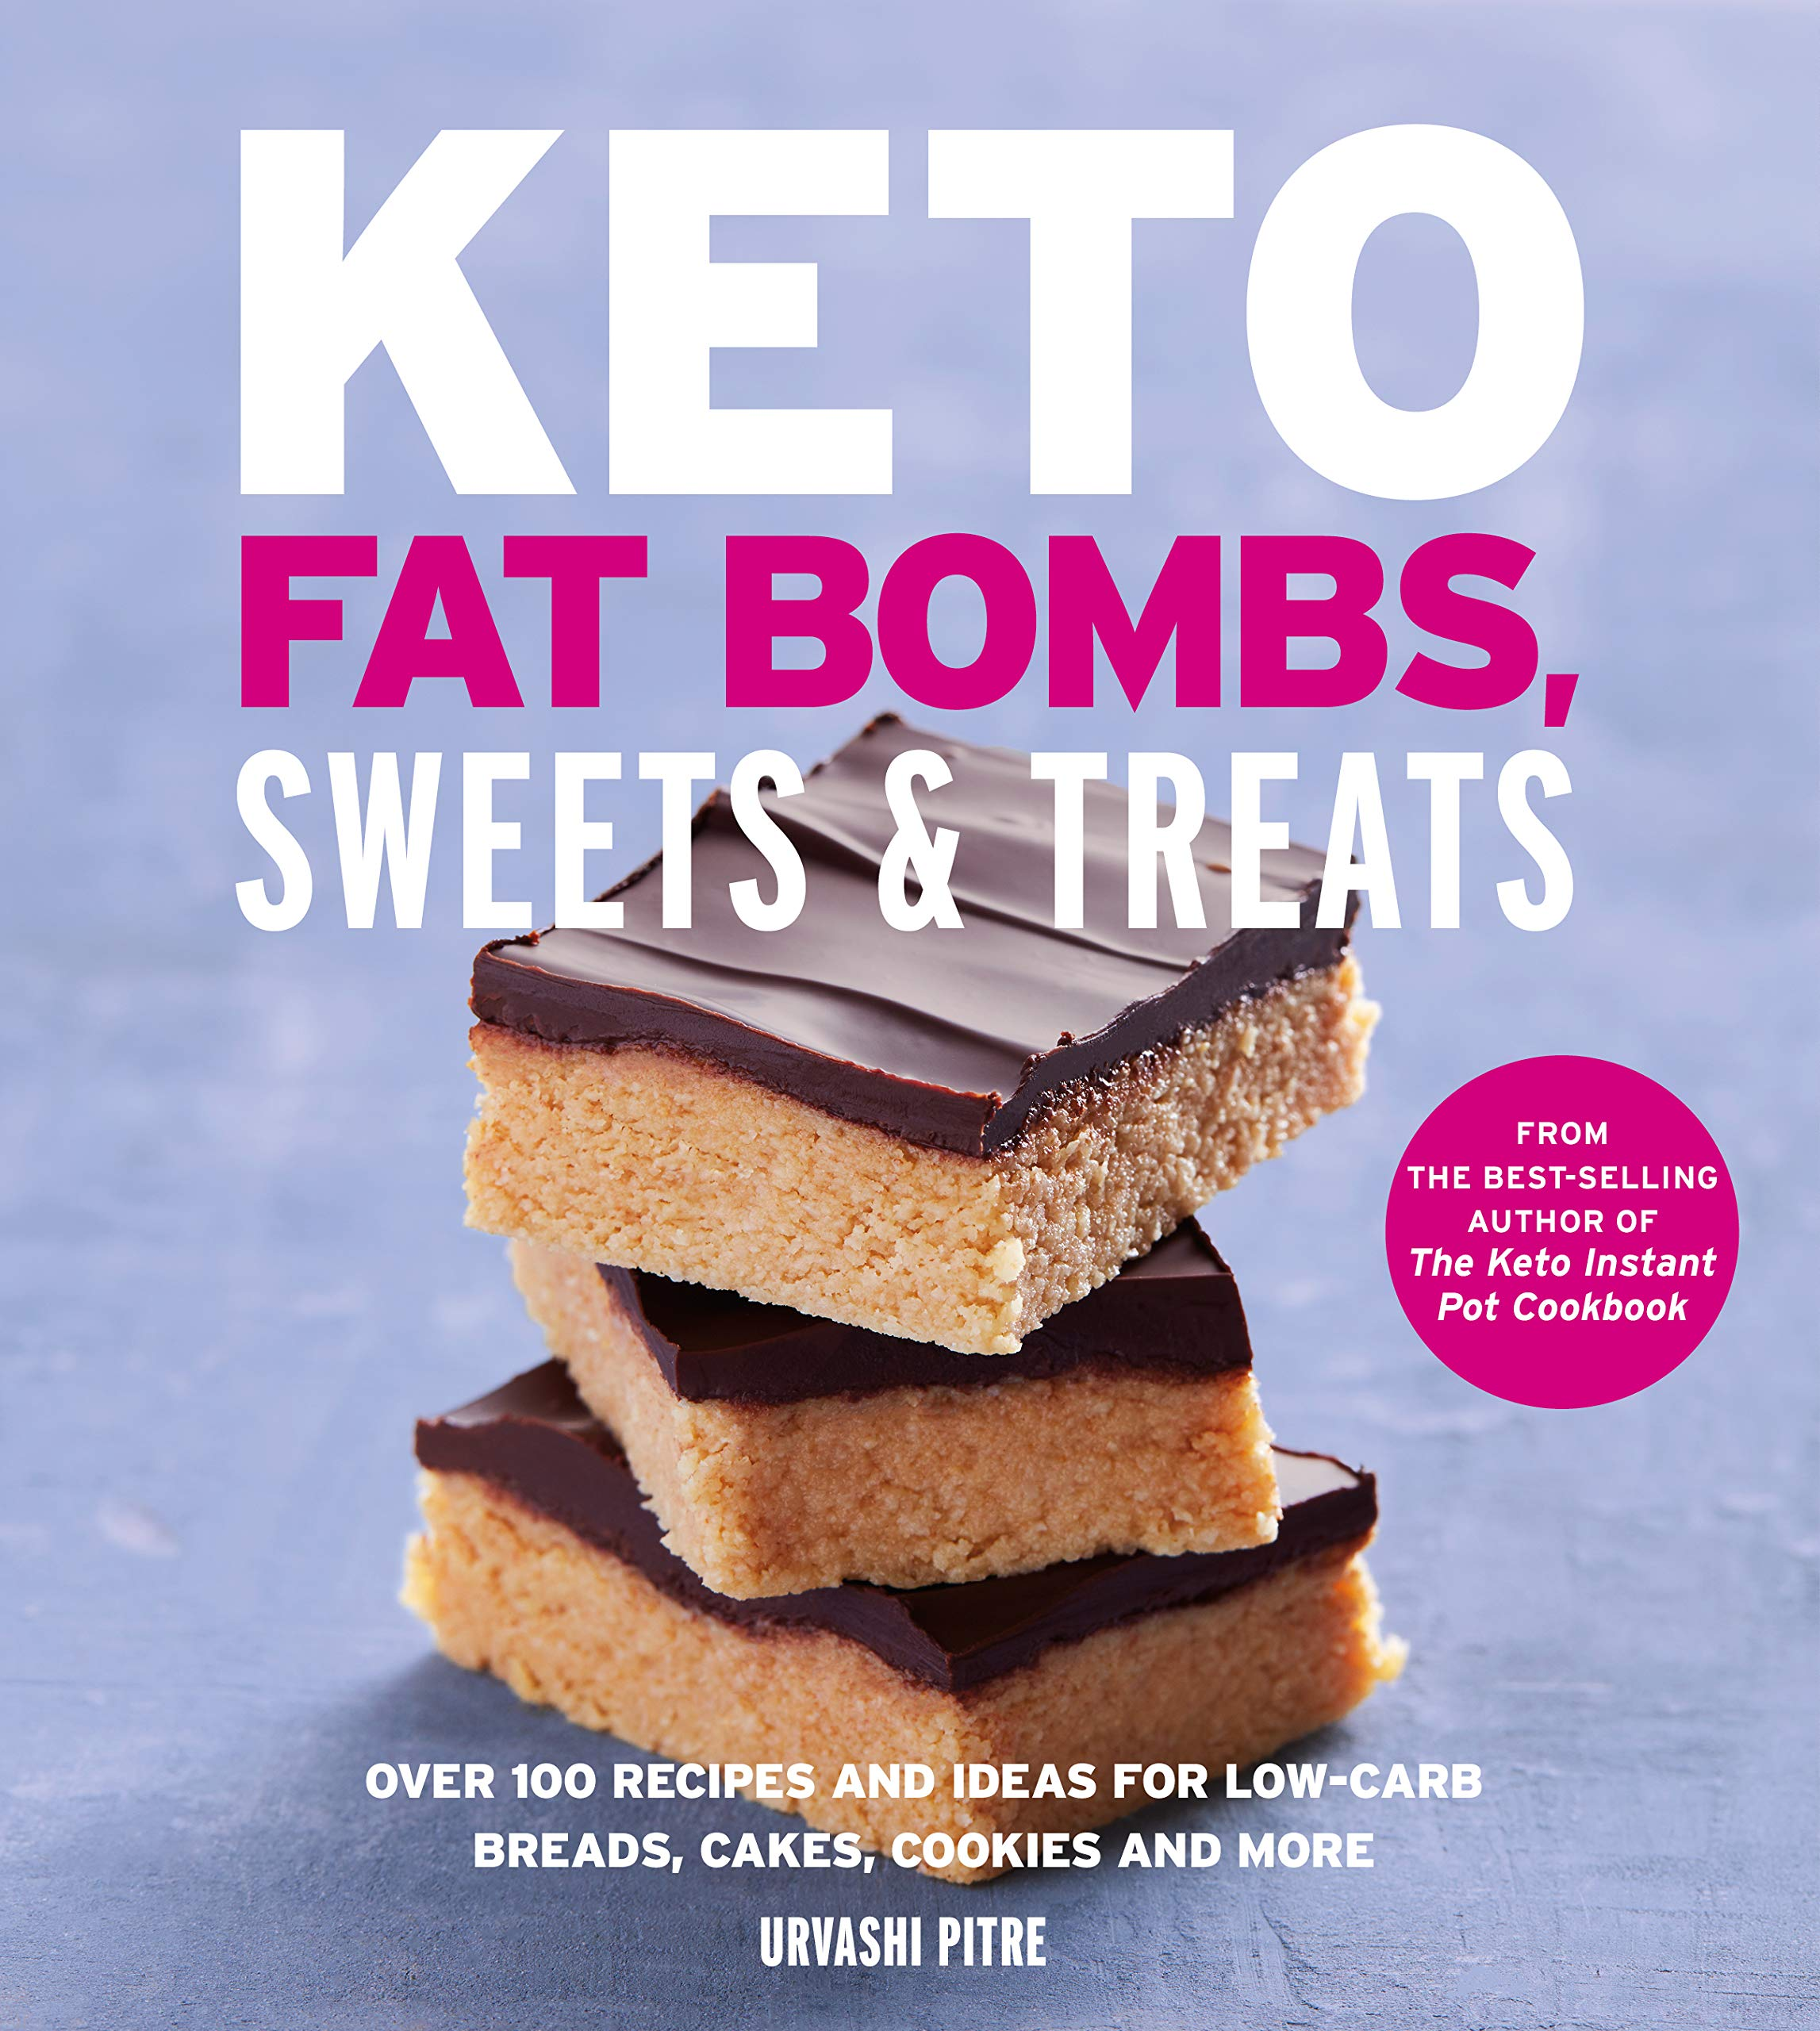 Keto Sweets Keto-Friendly Dessert Recipes  Unboxing And Setup